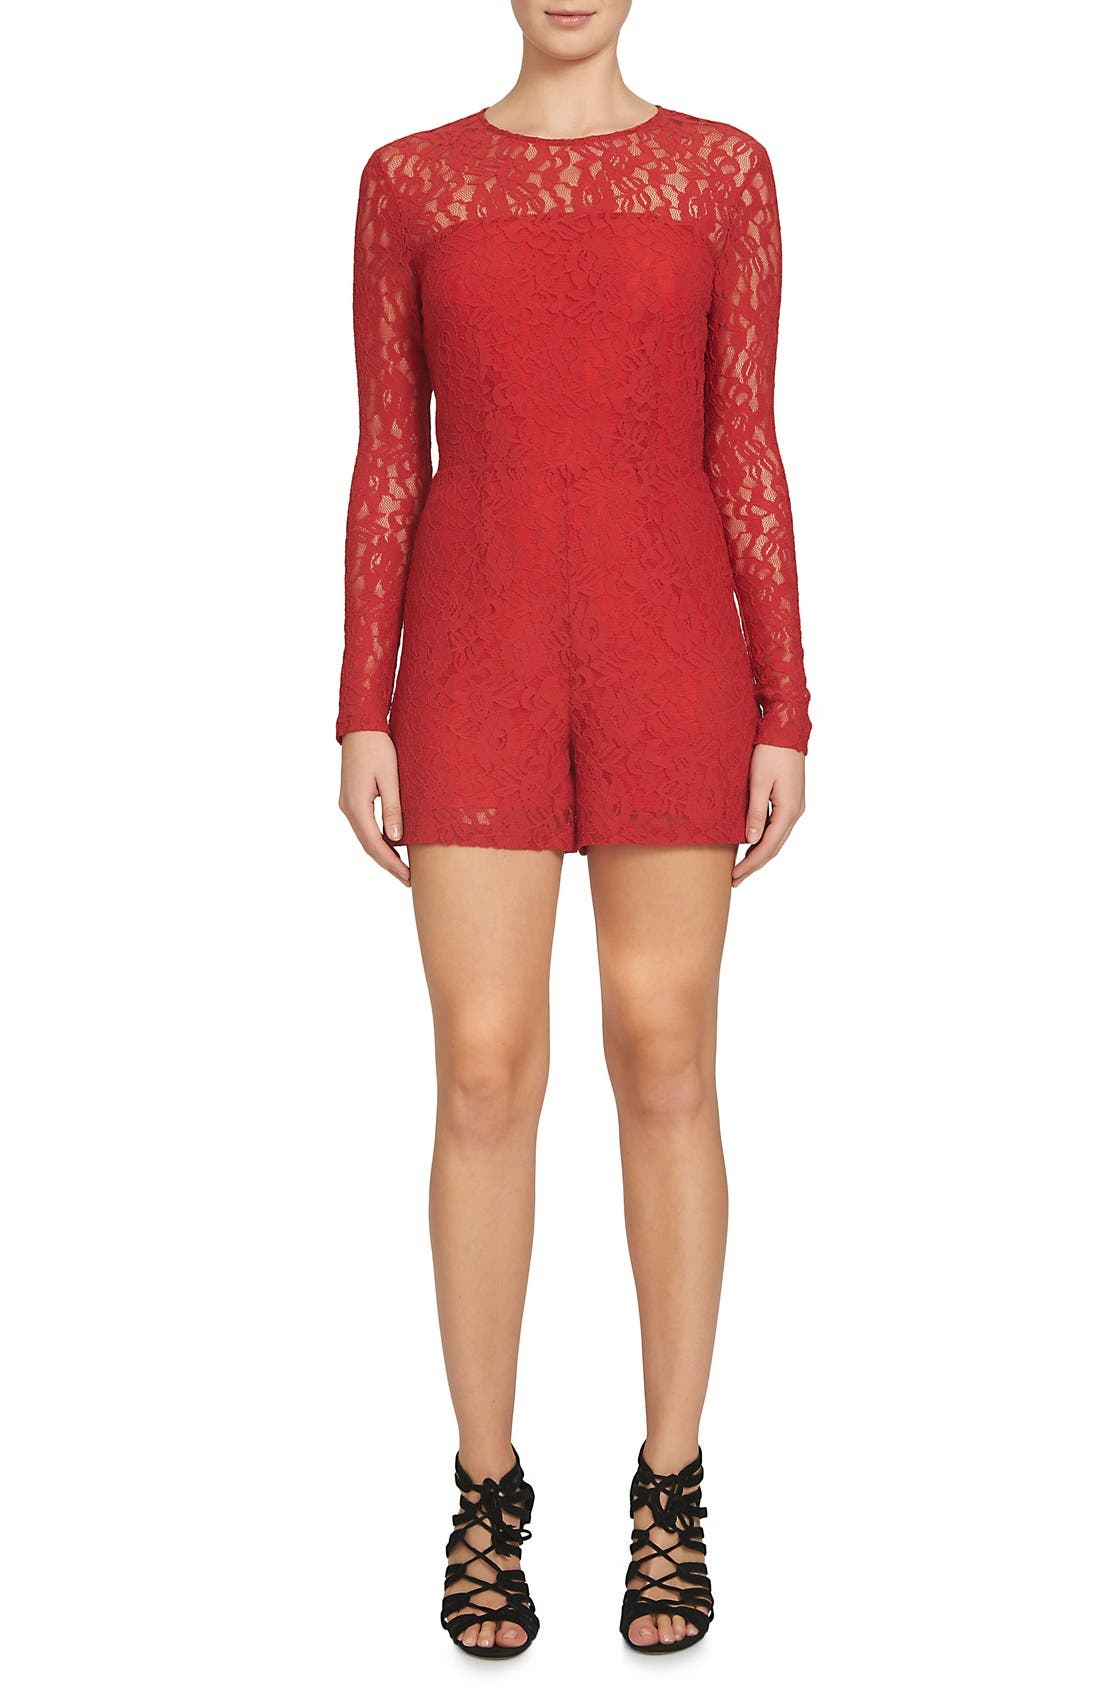 Alternate Image 1 Selected - 1.STATE Lace Romper